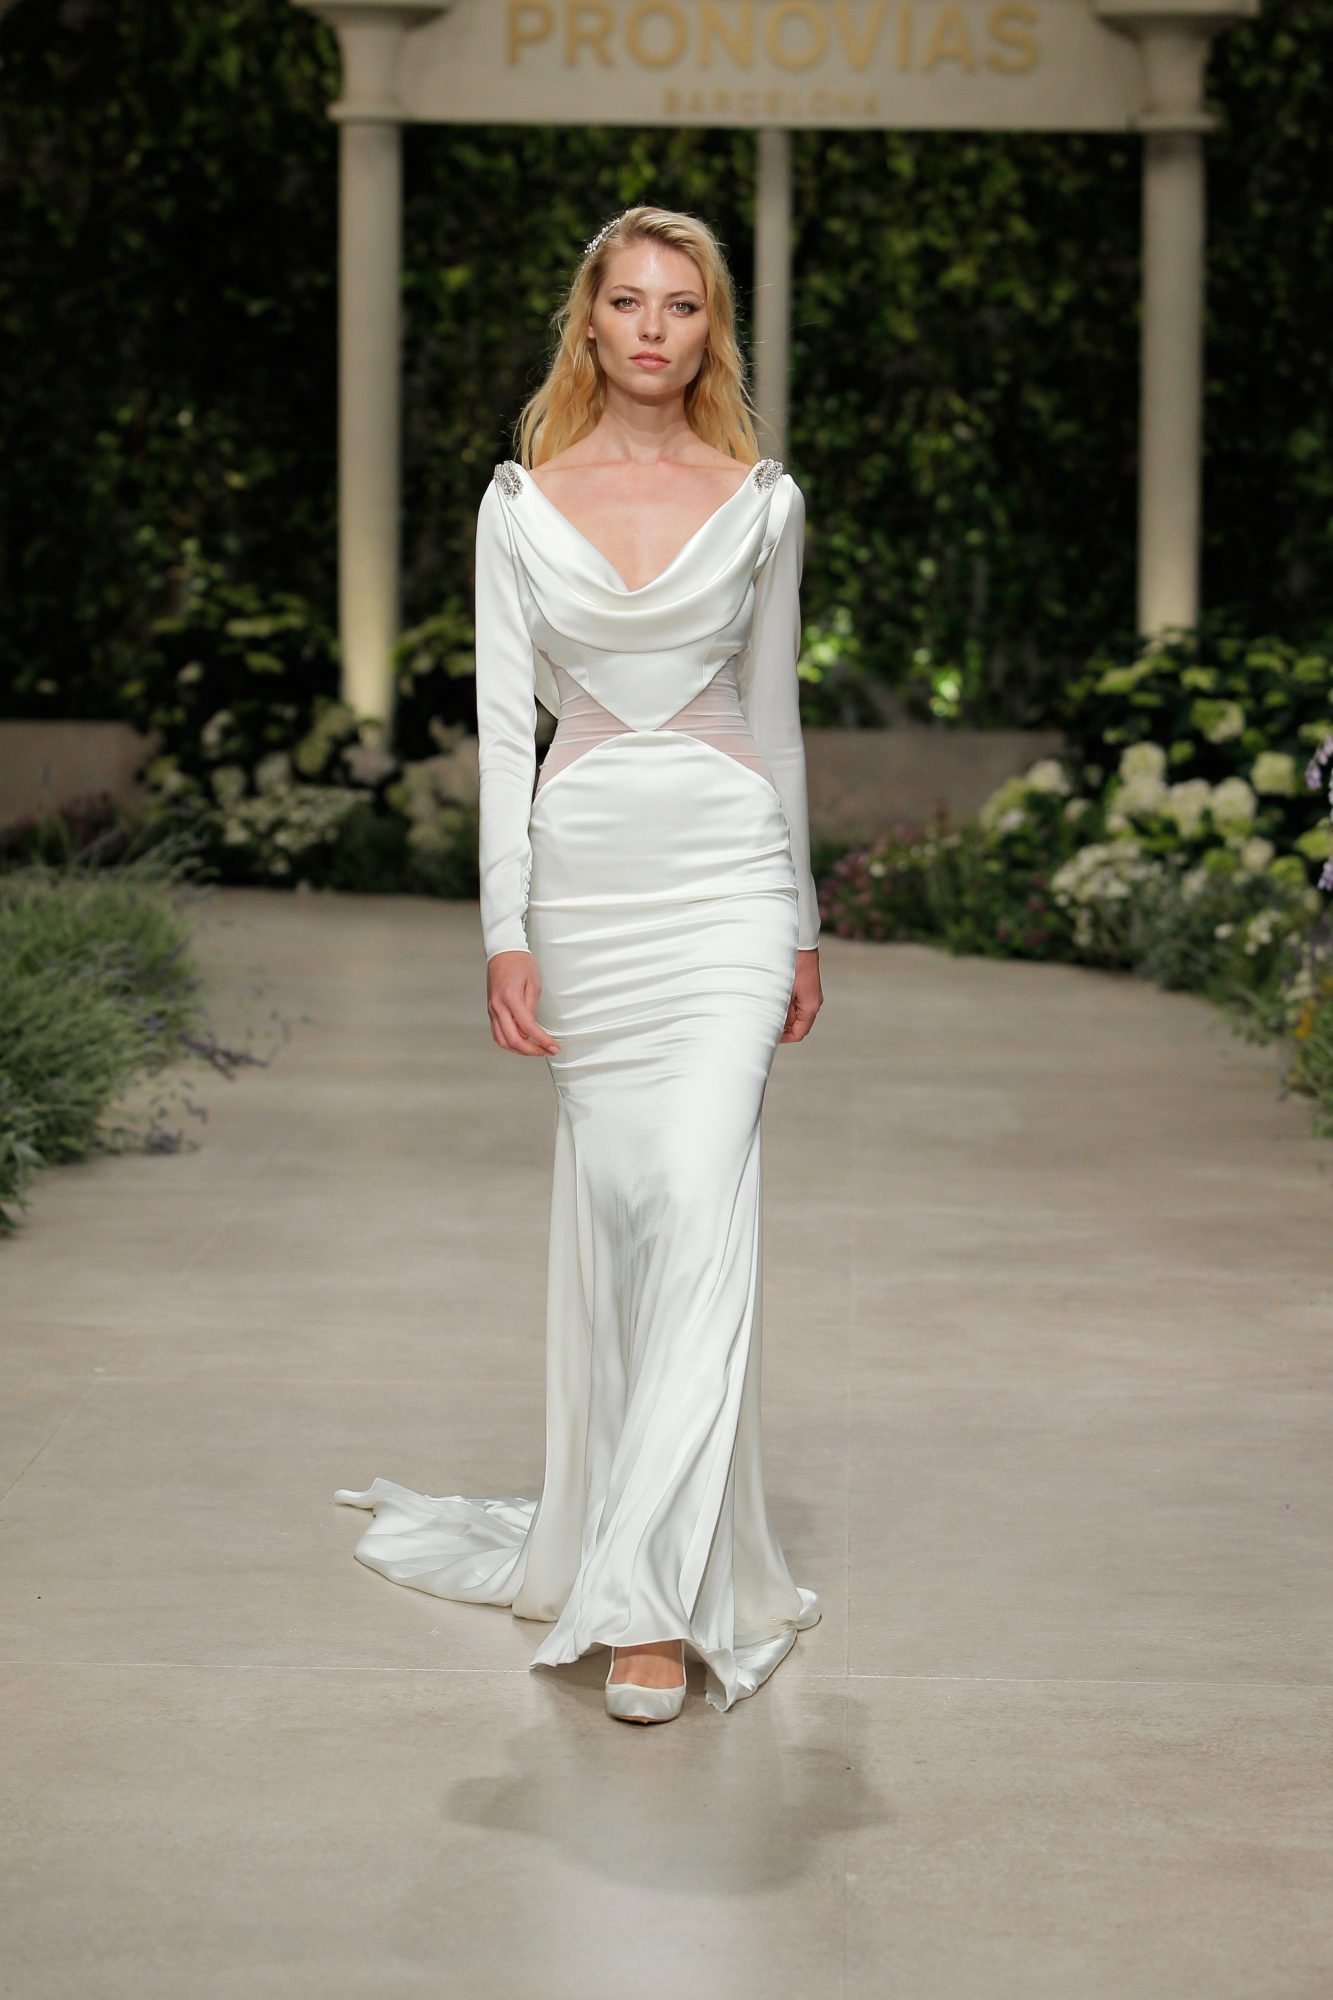 pronovias wedding dress spring 2019 sheer sides drape neckline